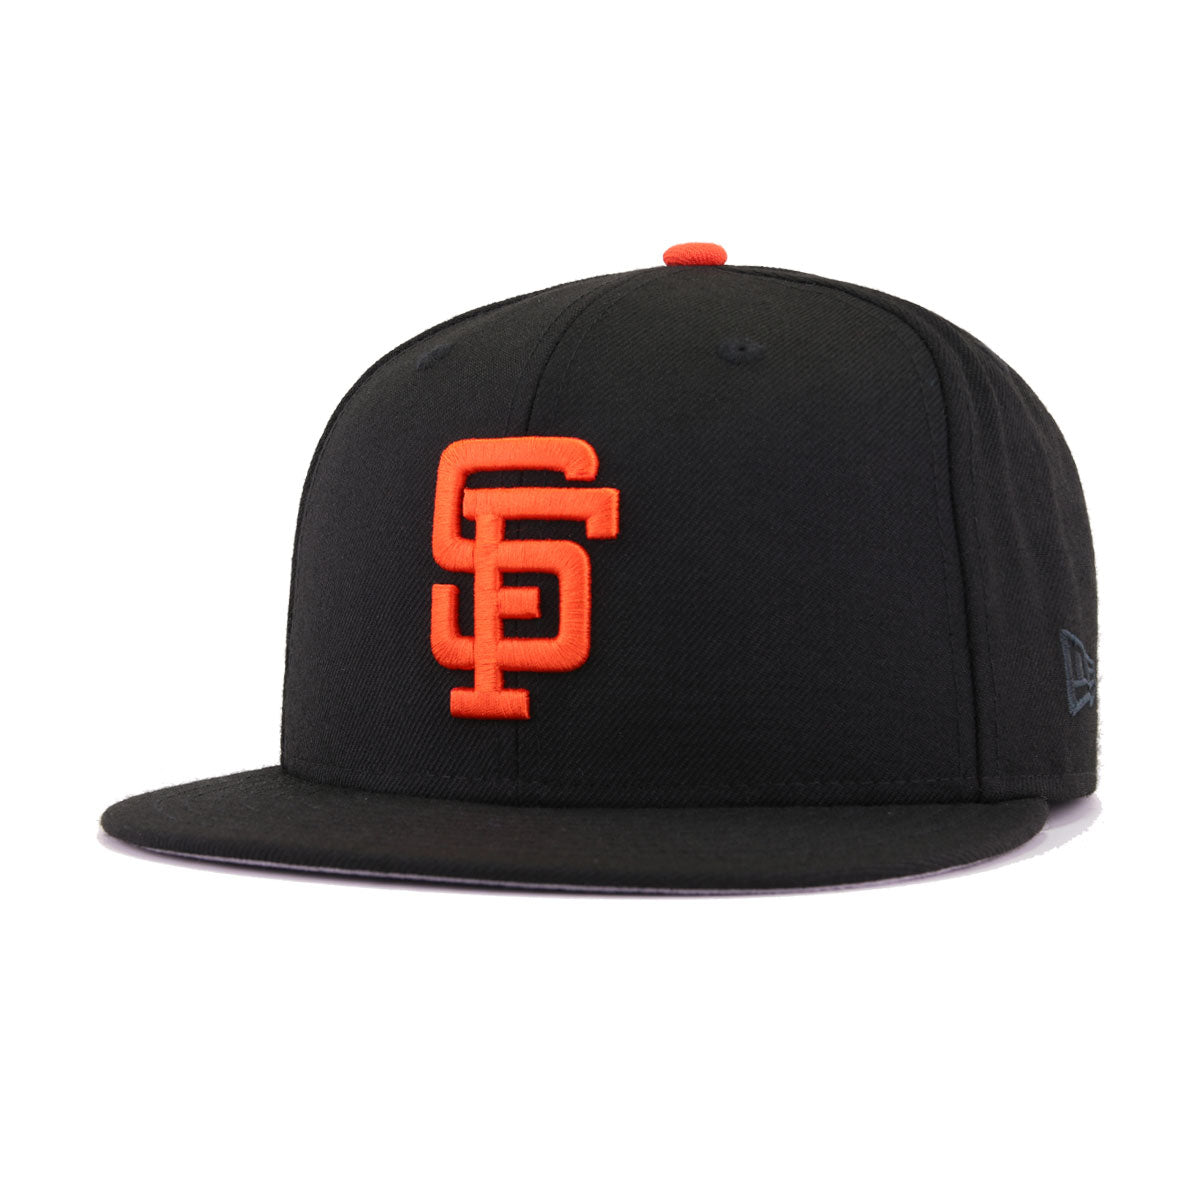 San Francisco Giants Black 1984 All Star Game New Era 59Fifty Fitted